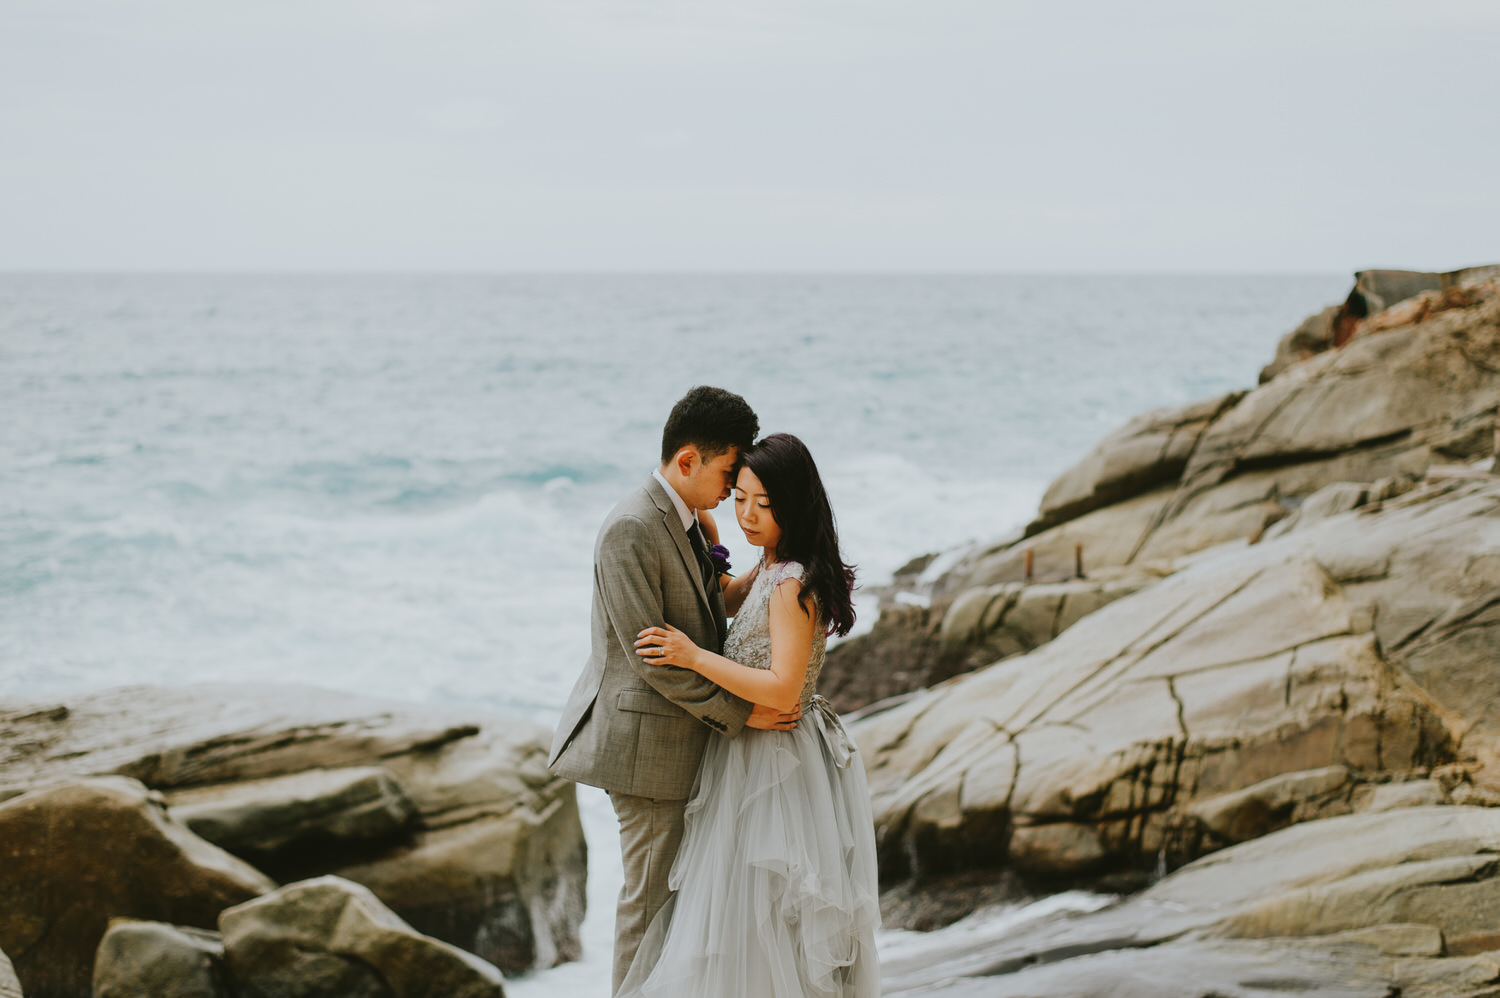 phuket wedding-diktatphotography-alex&andy wedding-168